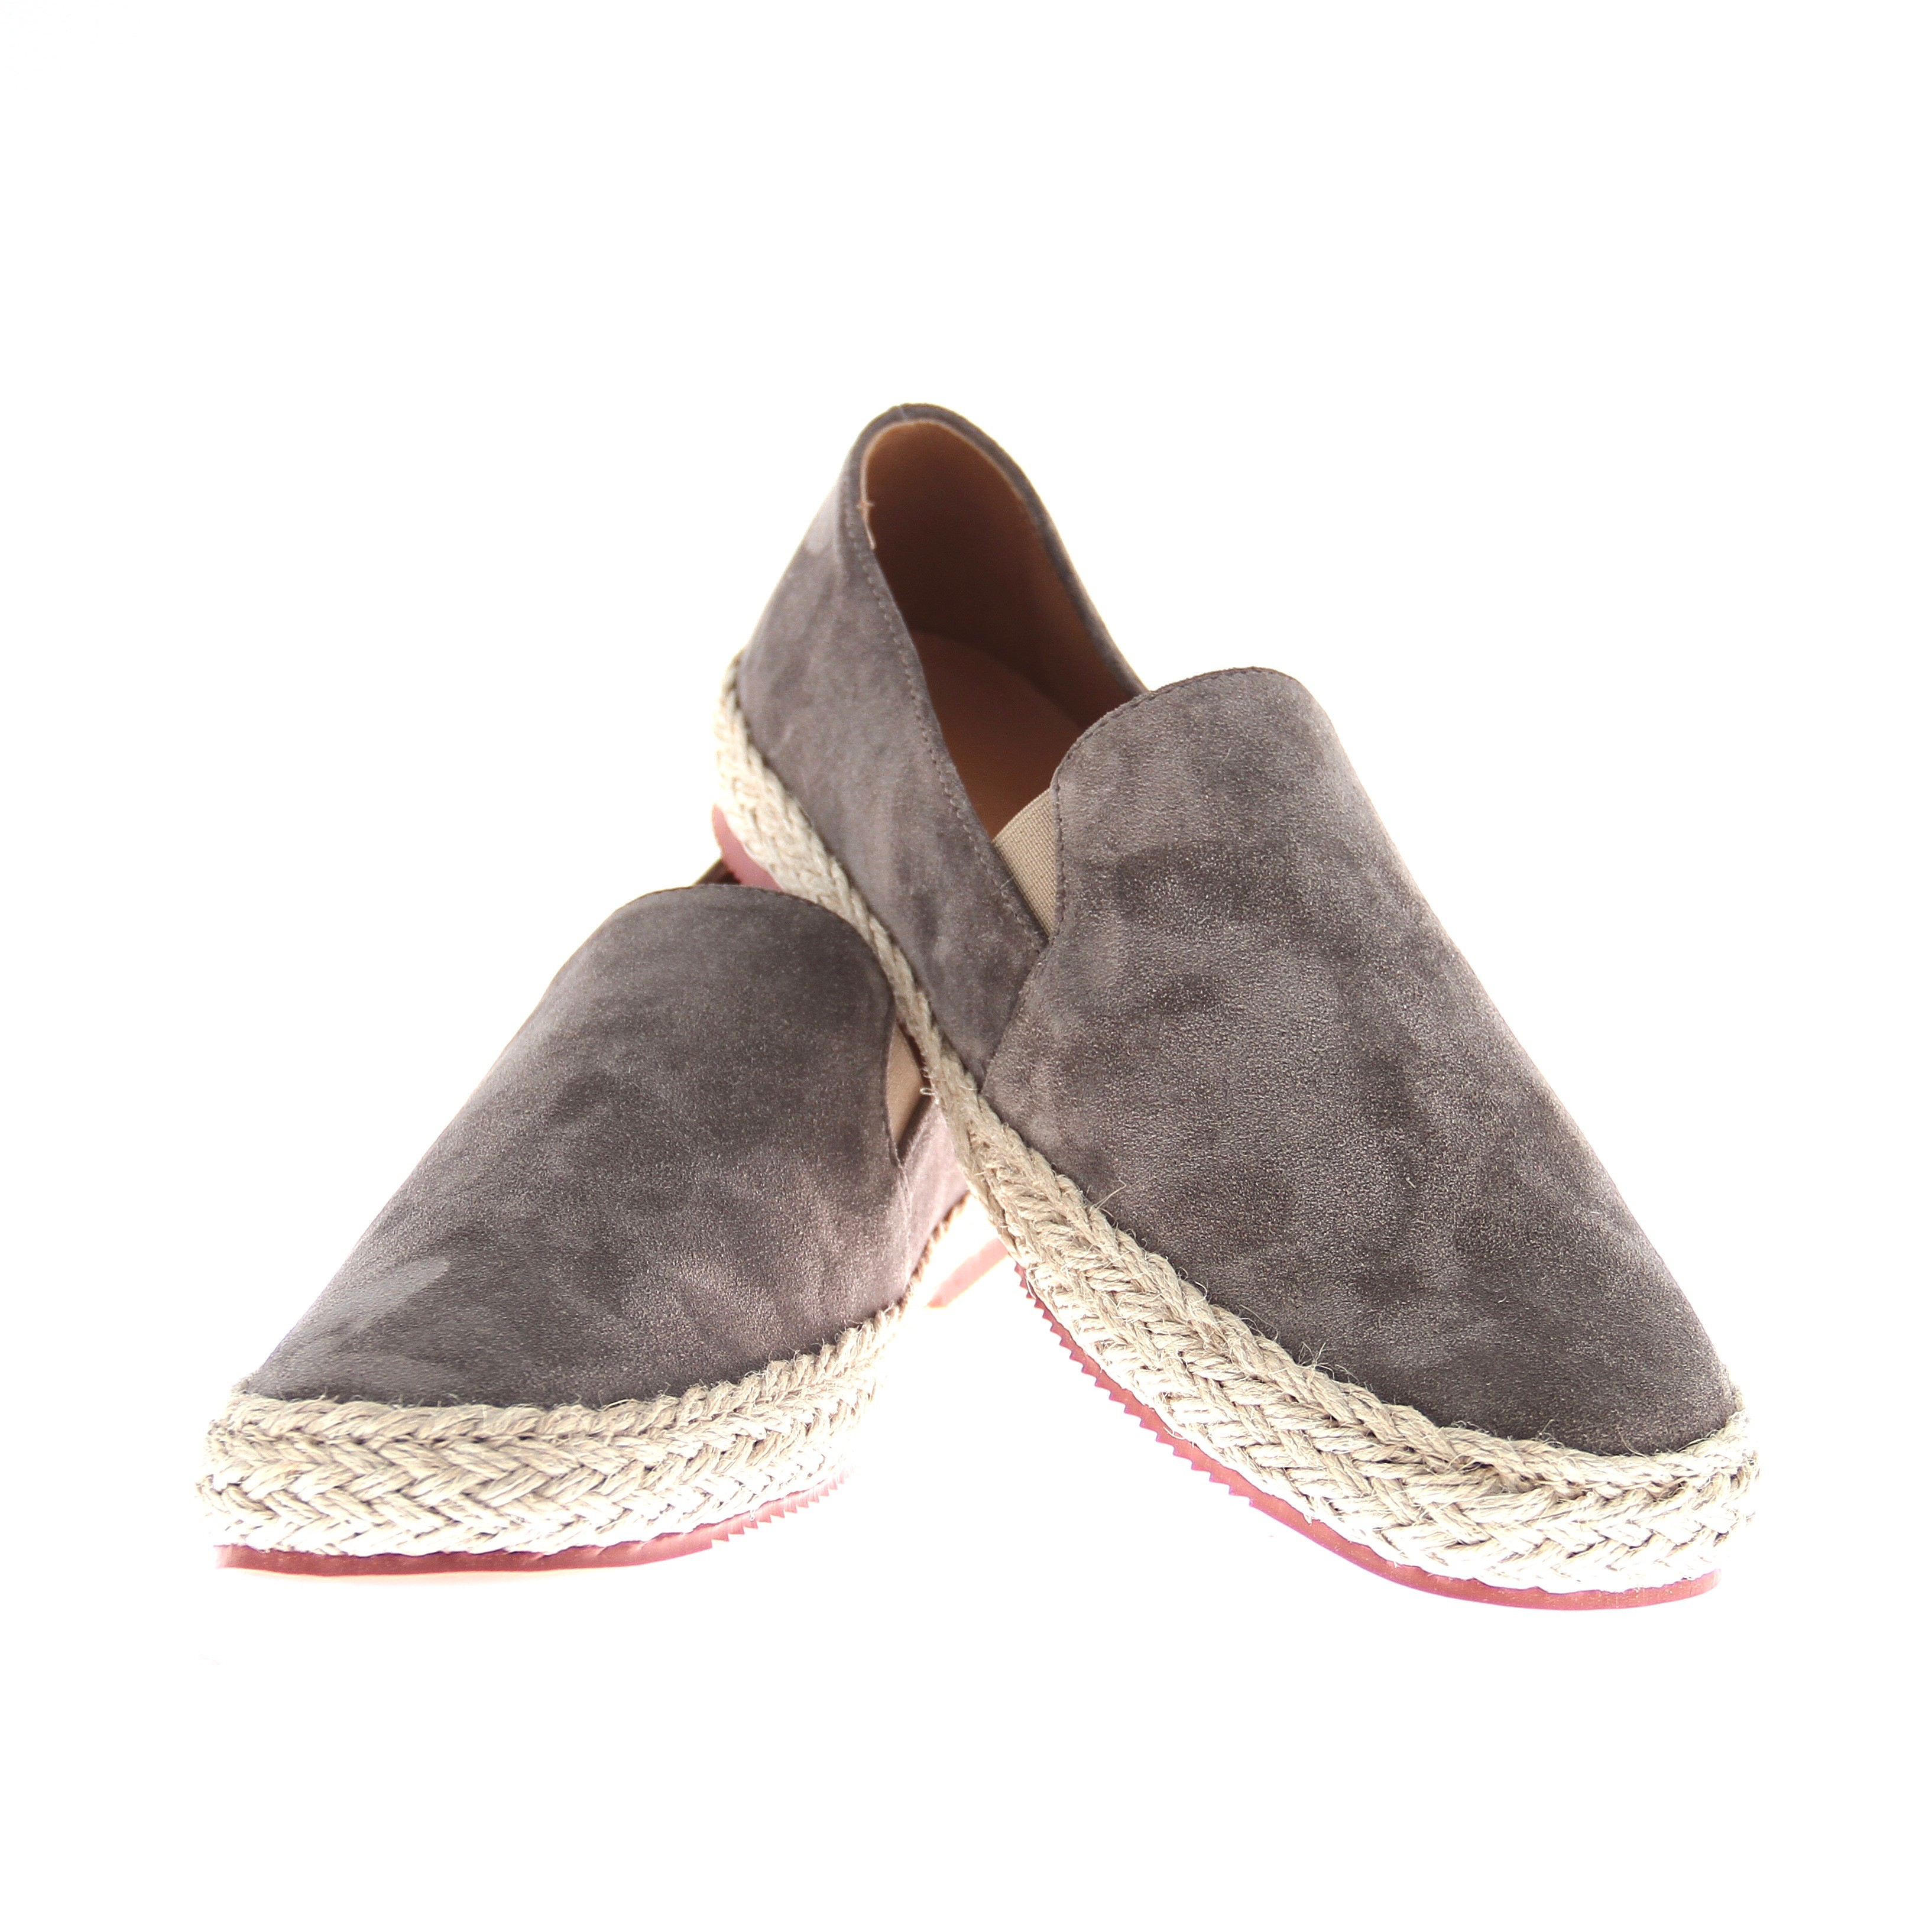 Espadrilles : taupe - veau velours - made in italy (Shoes)